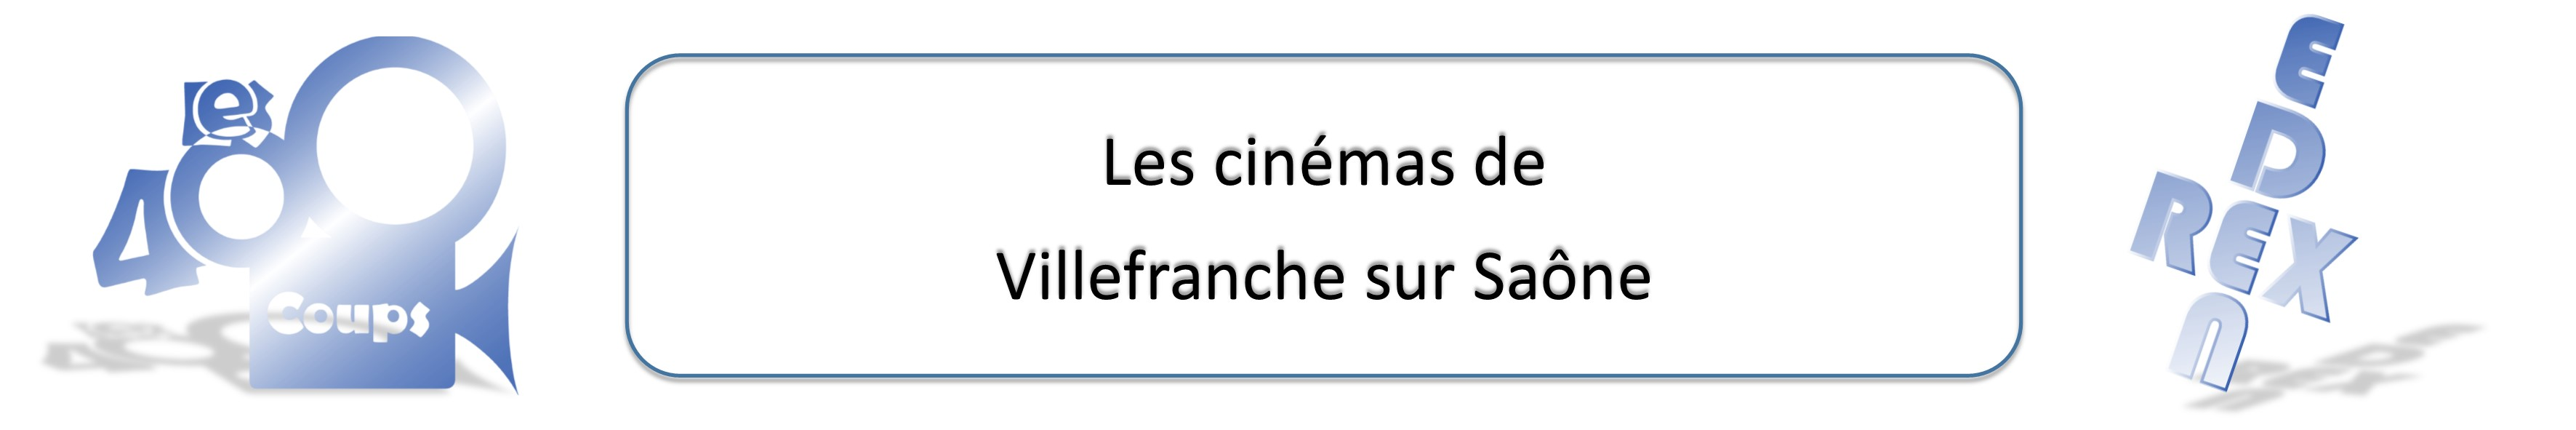 Accueil les 400 coups - Programme cinema 400 coups angers ...